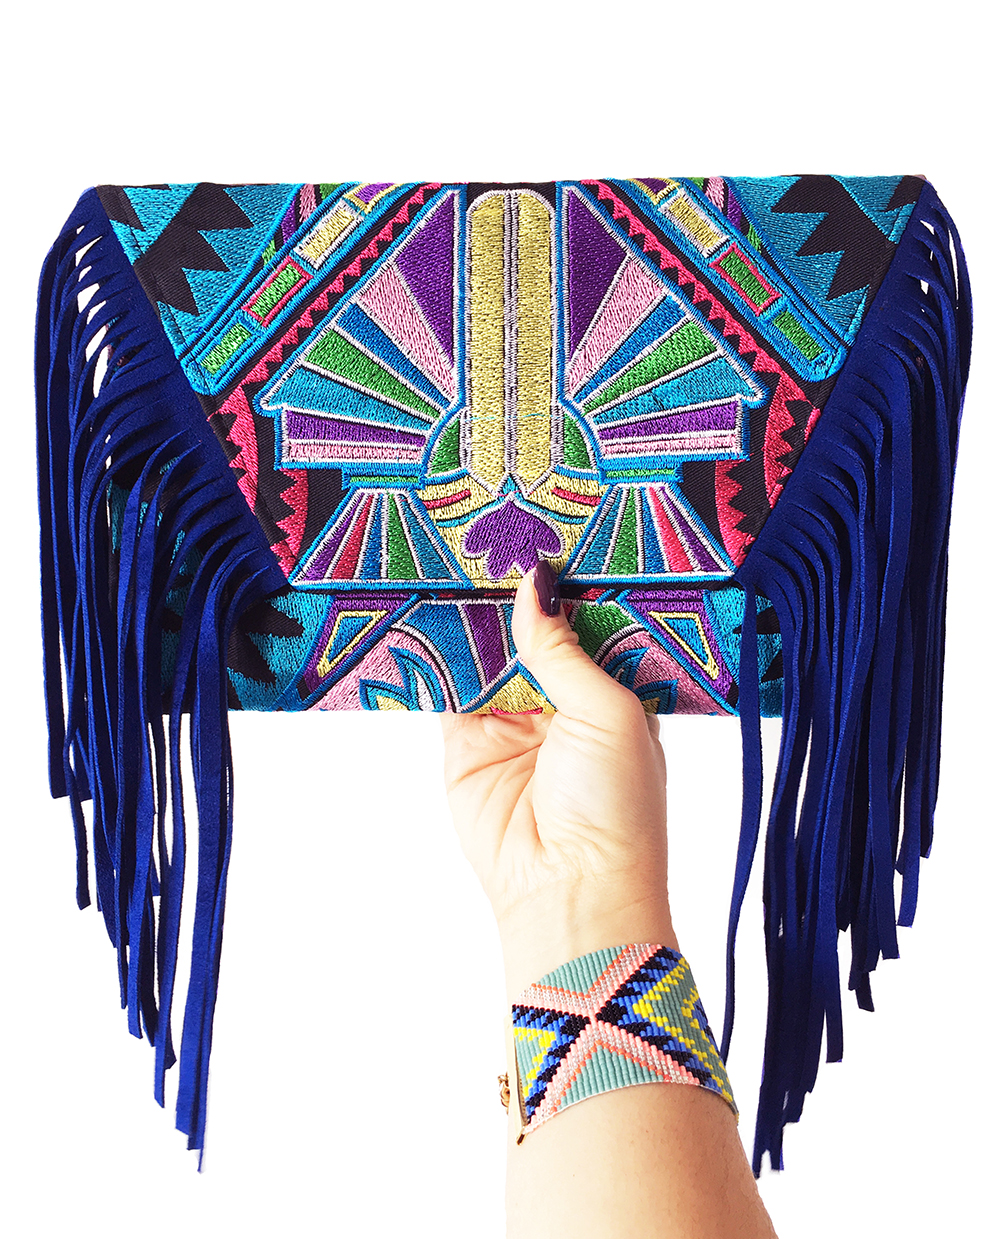 Blue suede fringe bag Shh by Sadie